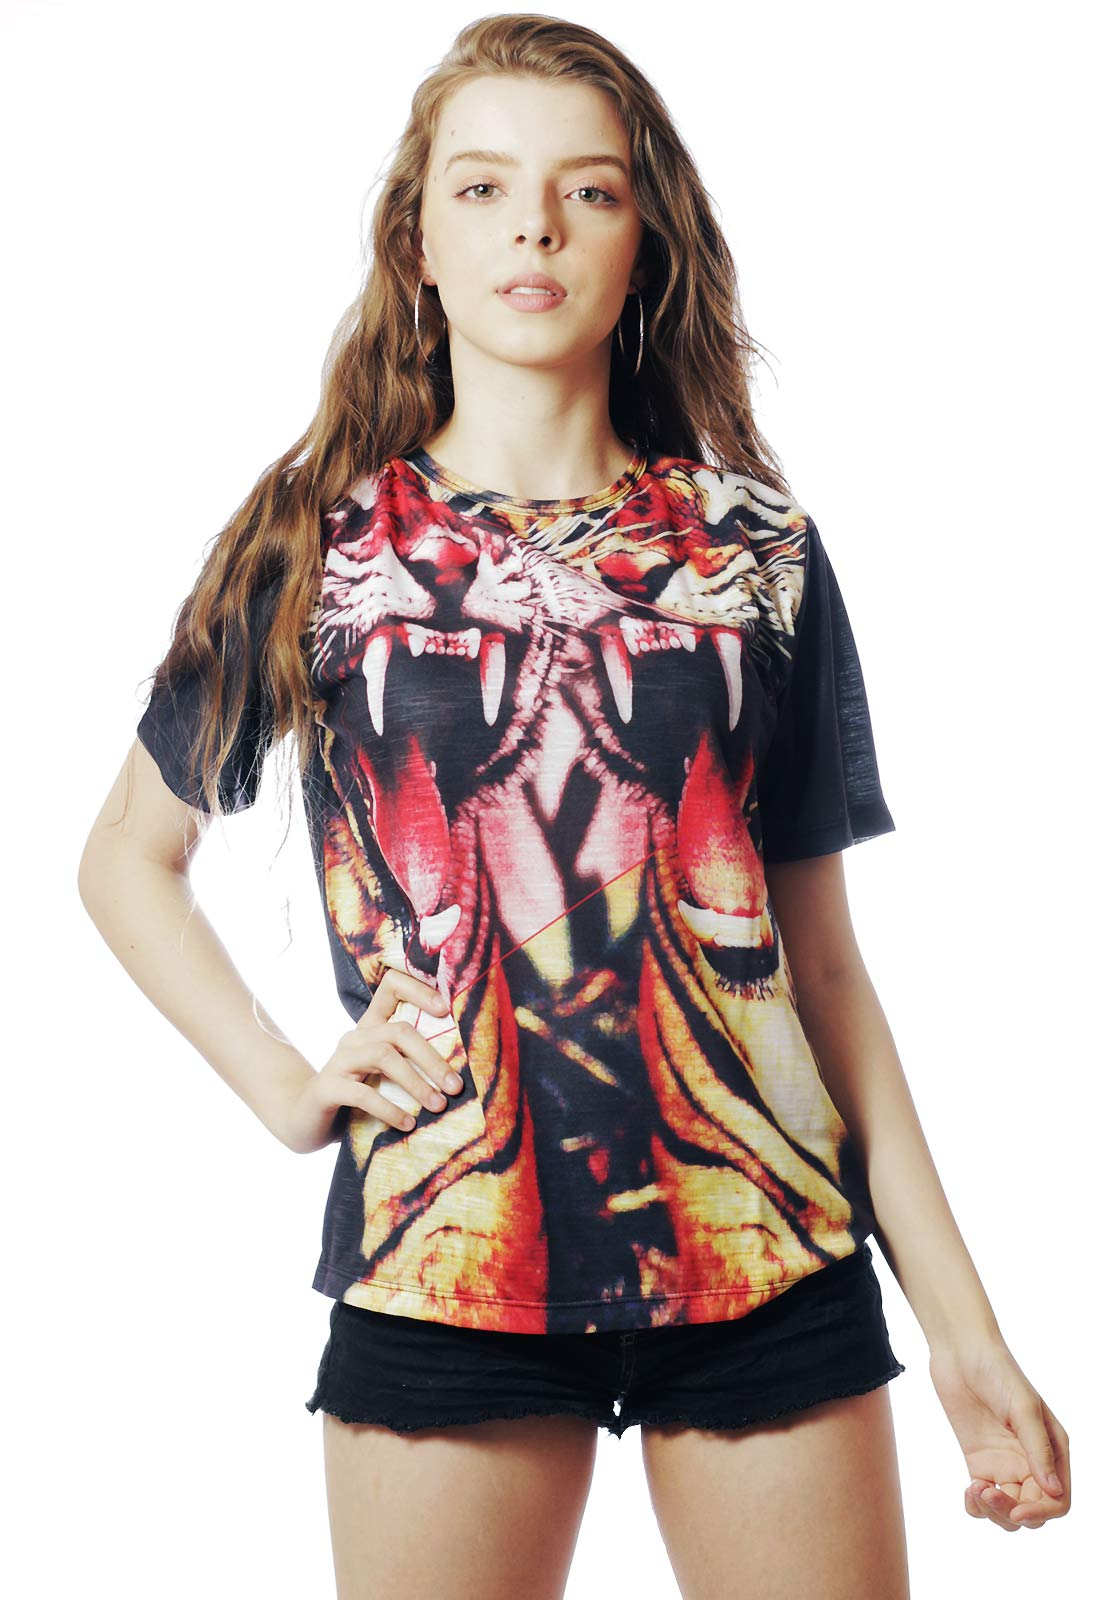 Camiseta Animal Print Estampada Full Print Unissex Tigre Asian Preta BF